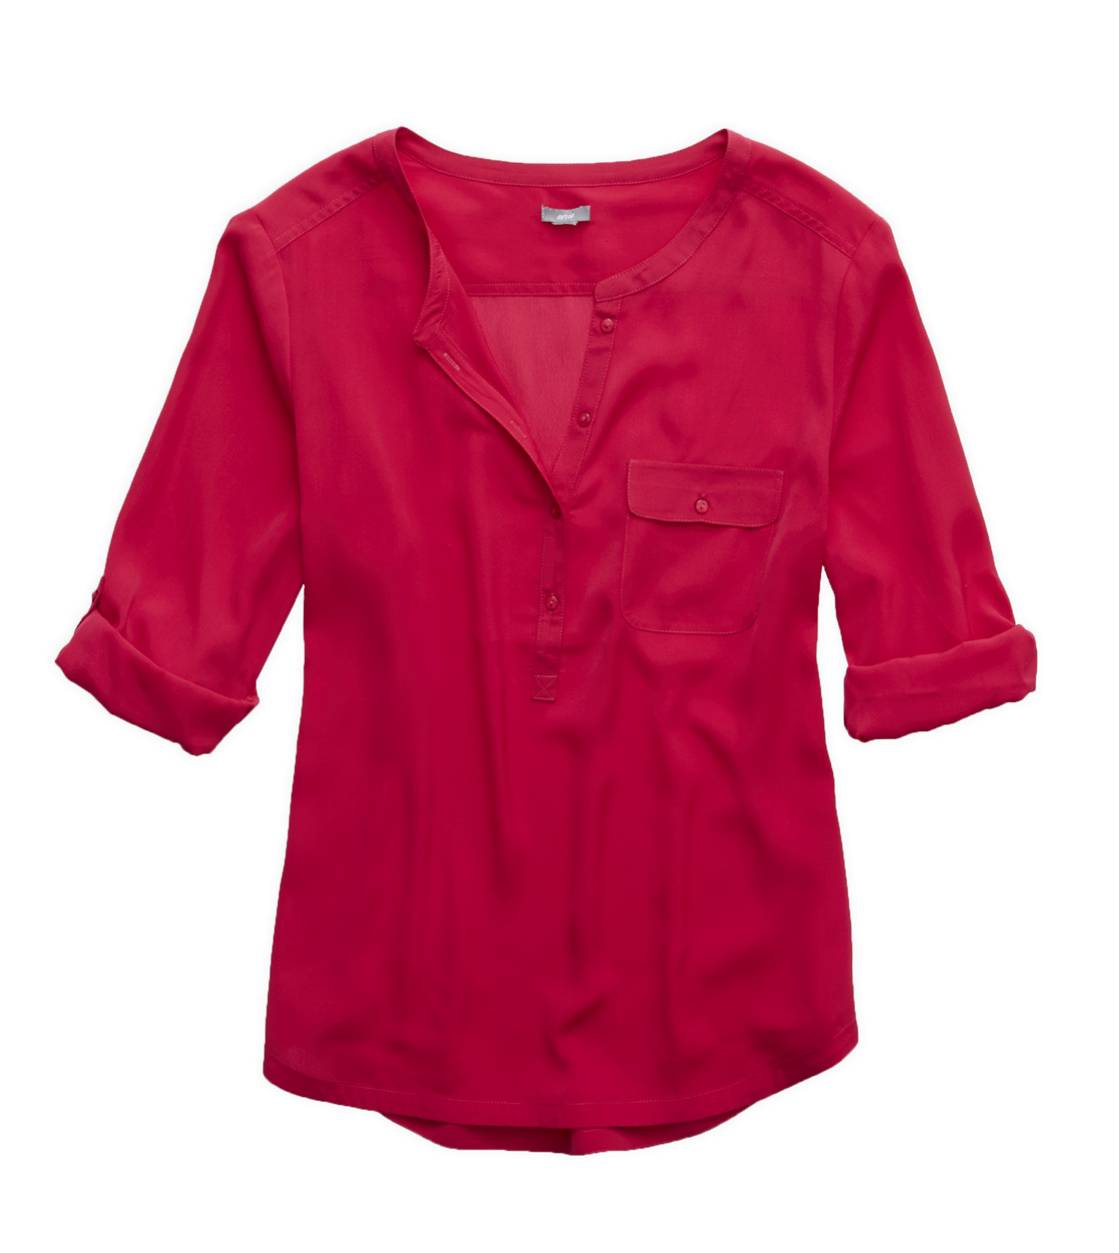 Ruby Stone Aerie Silky Button Down Shirt